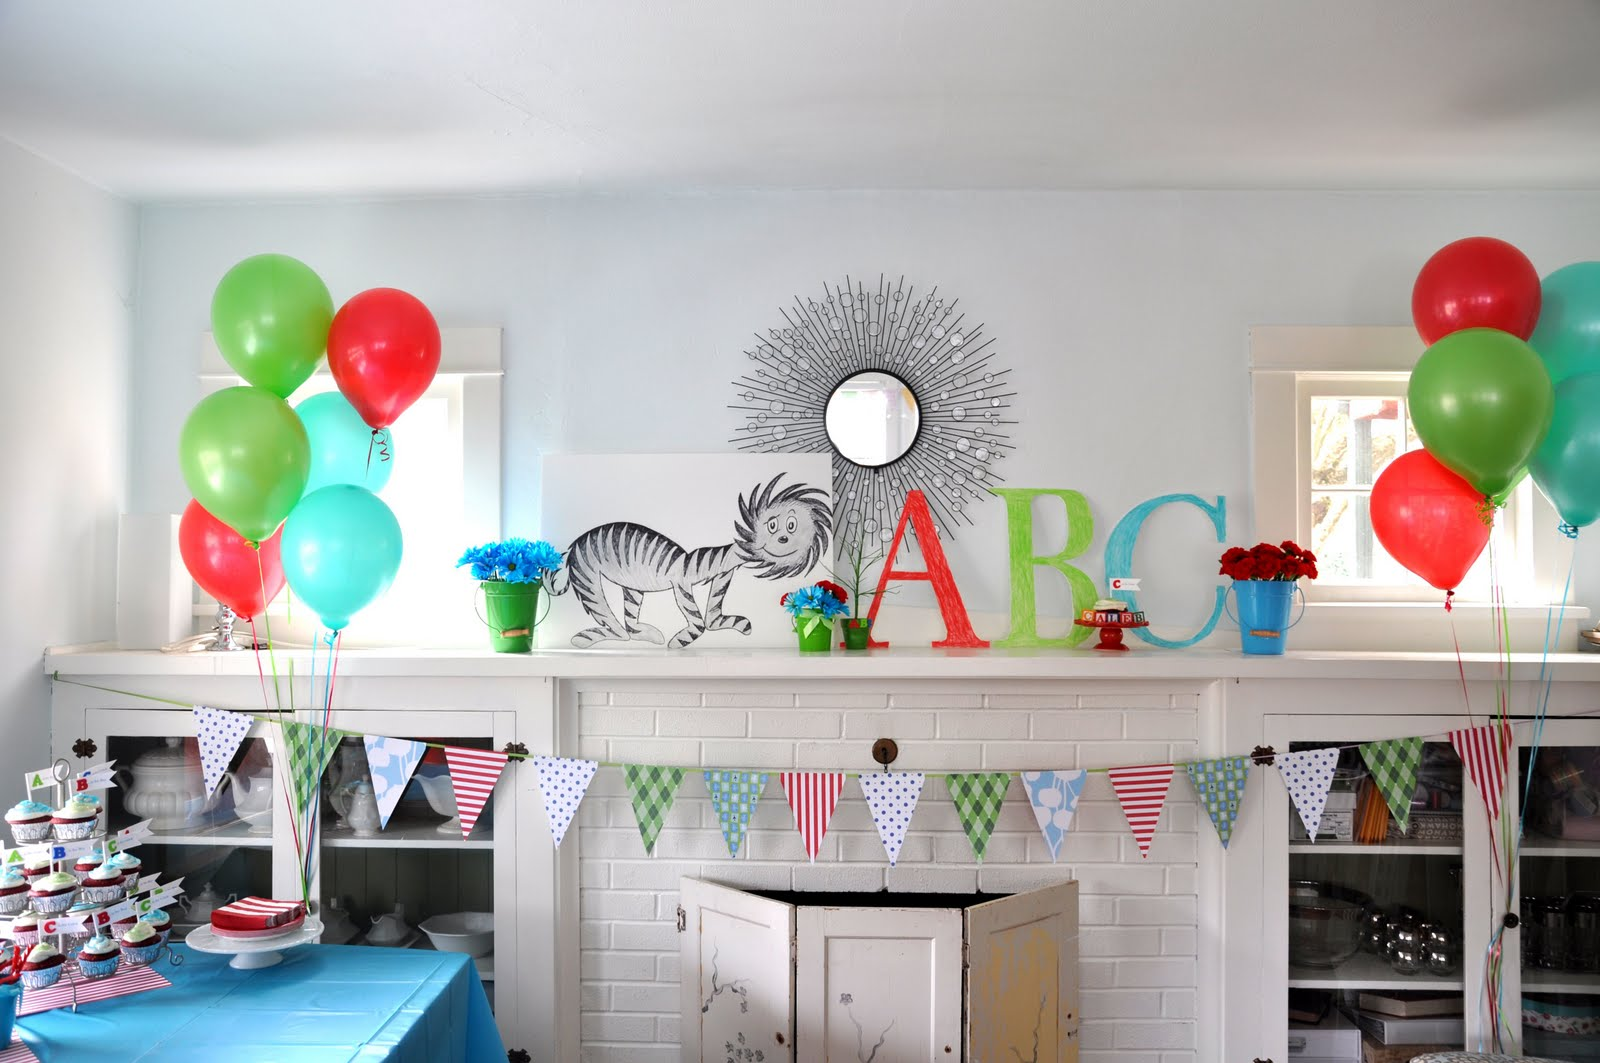 dr-seuss-celebration-ideas